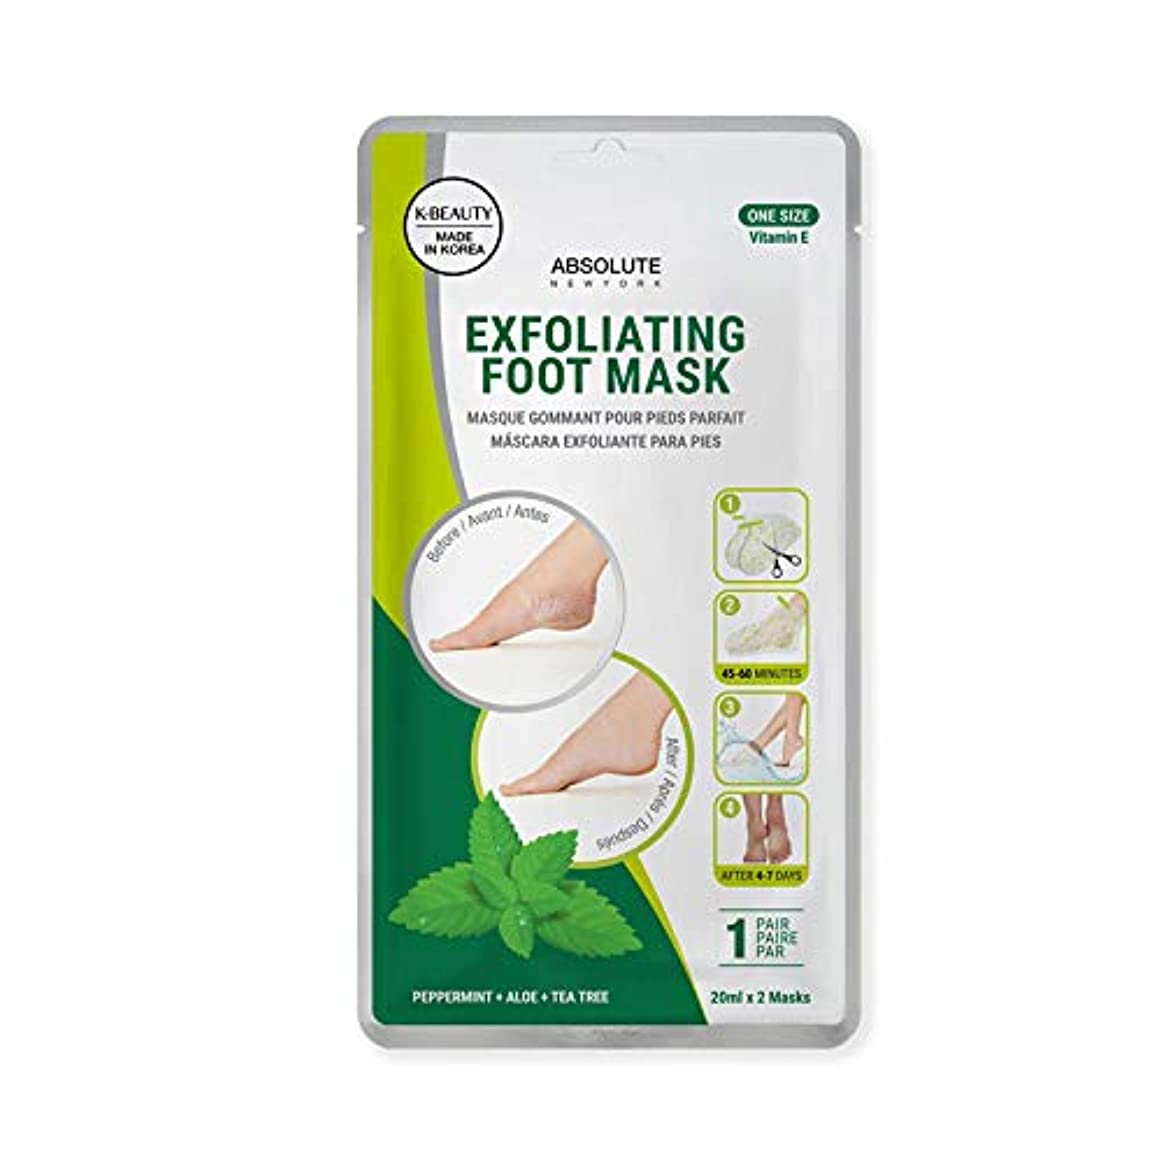 過剰一時解雇するローブ(3 Pack) ABSOLUTE Exfoliating Foot Mask - Peppermint + Aloe + Tea Tree (並行輸入品)